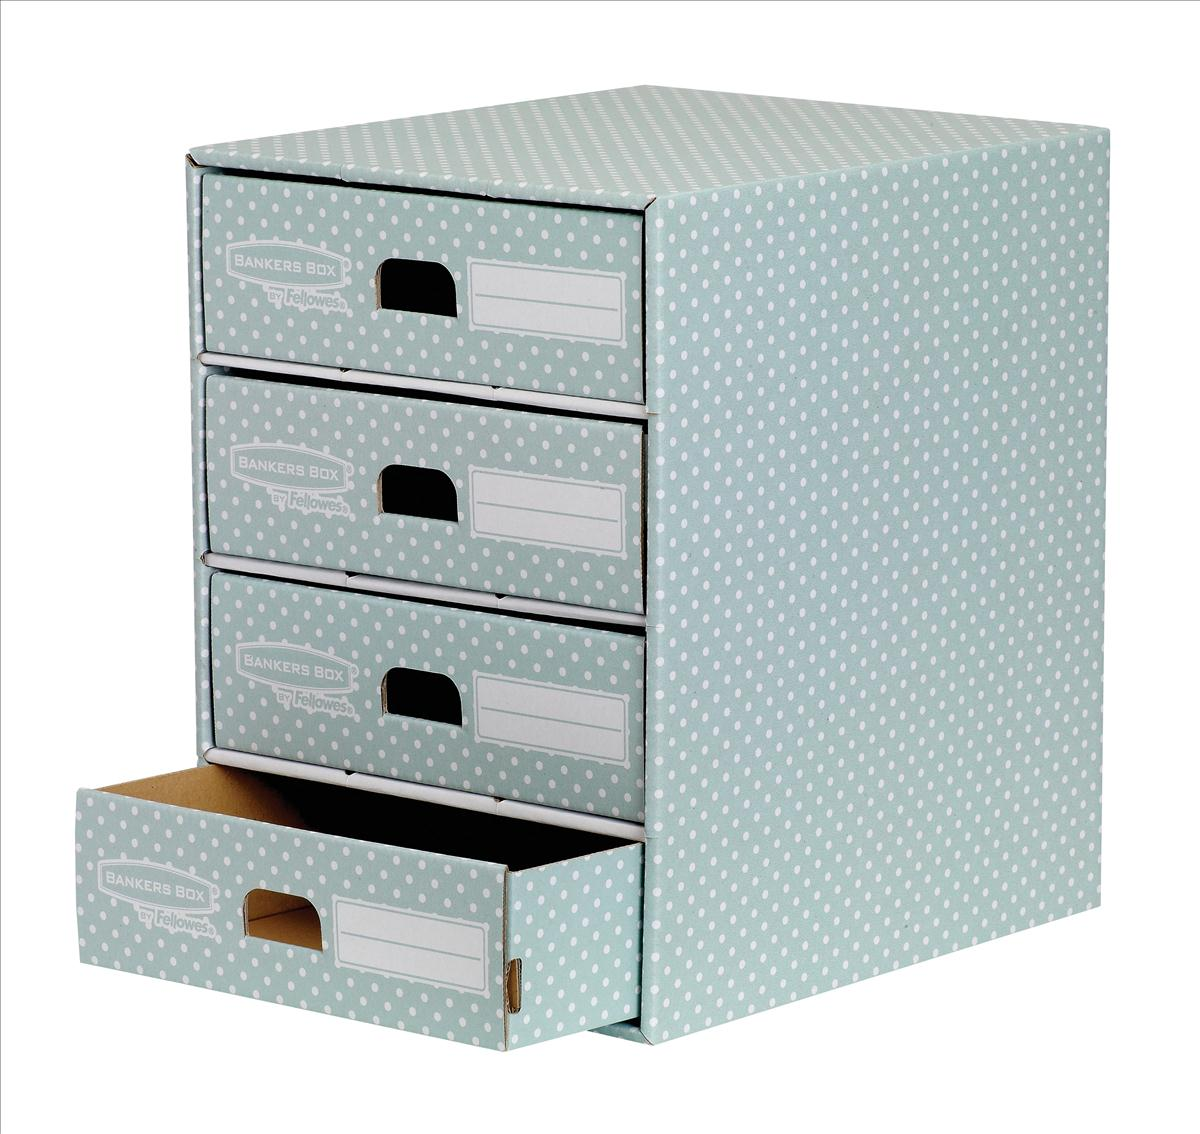 Image for Bankers Box by Fellowes 4 Drawer Unit Fastfold Recycled FSC A4 Green/White Ref 4481701